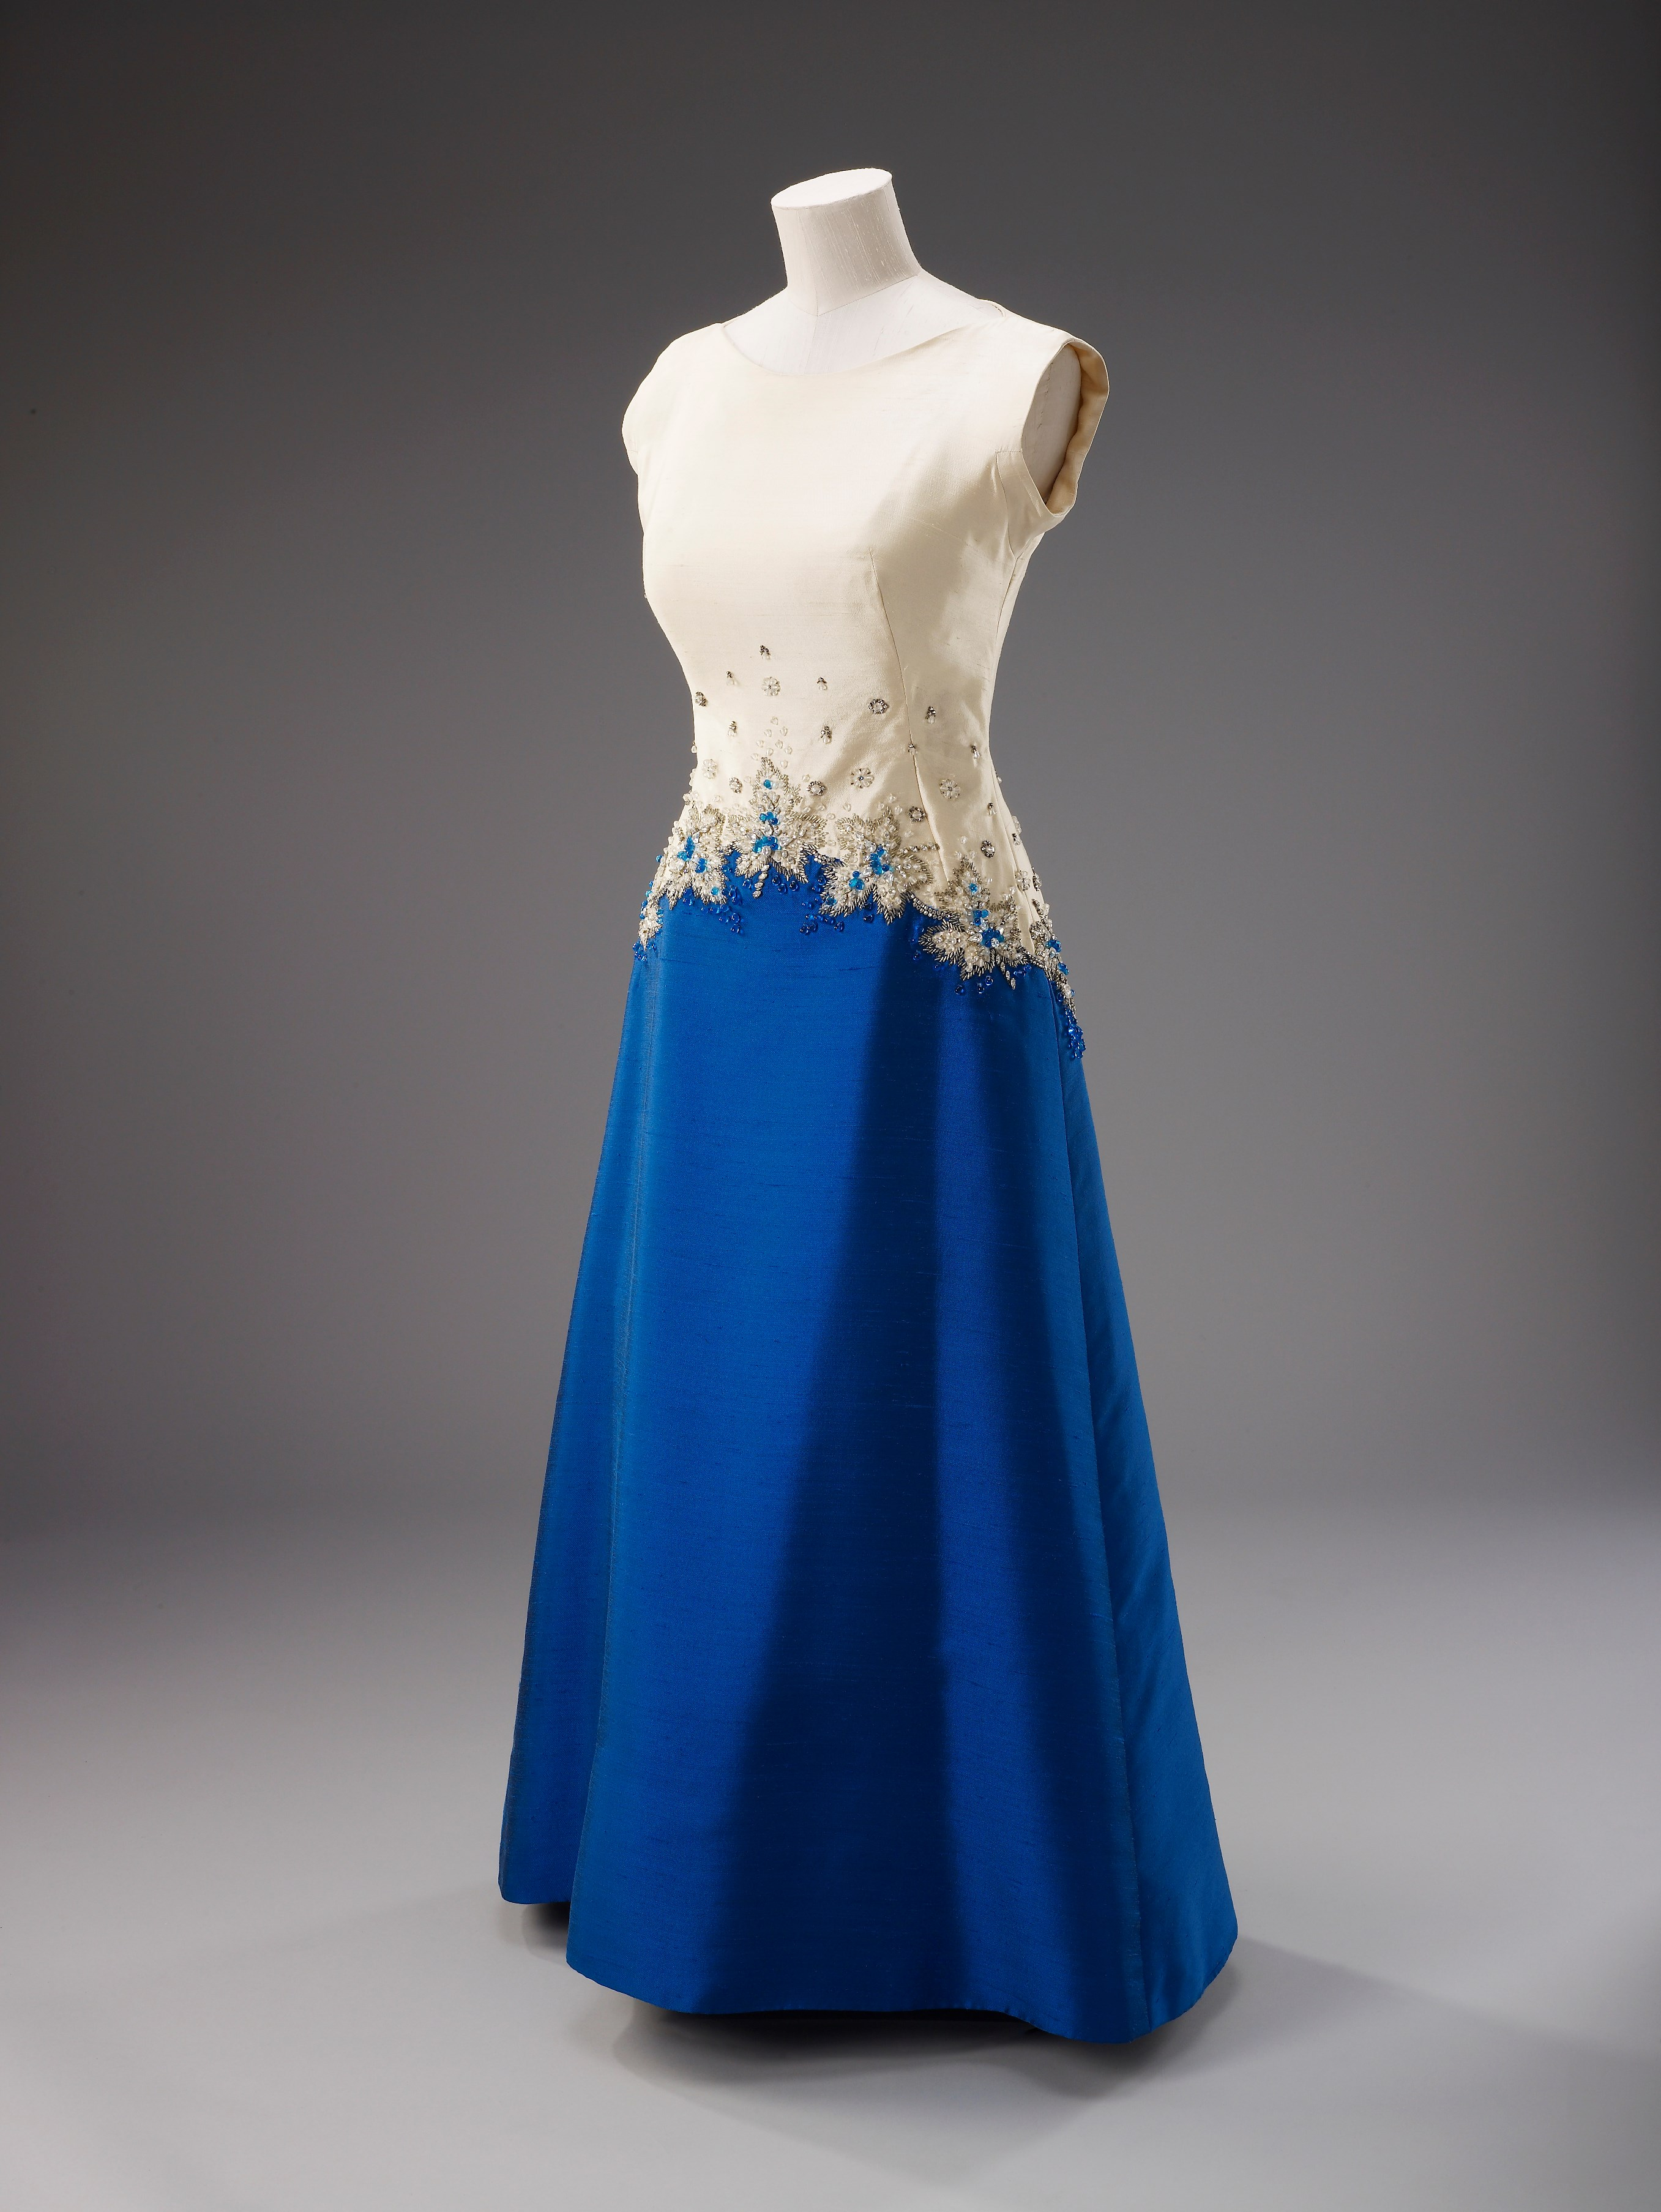 Sir Norman Hartnell, evening dress, 1967. Worn by Her Majesty The Queen in Ottowa to mark the centennial celebrations of the Confederation of Canada.